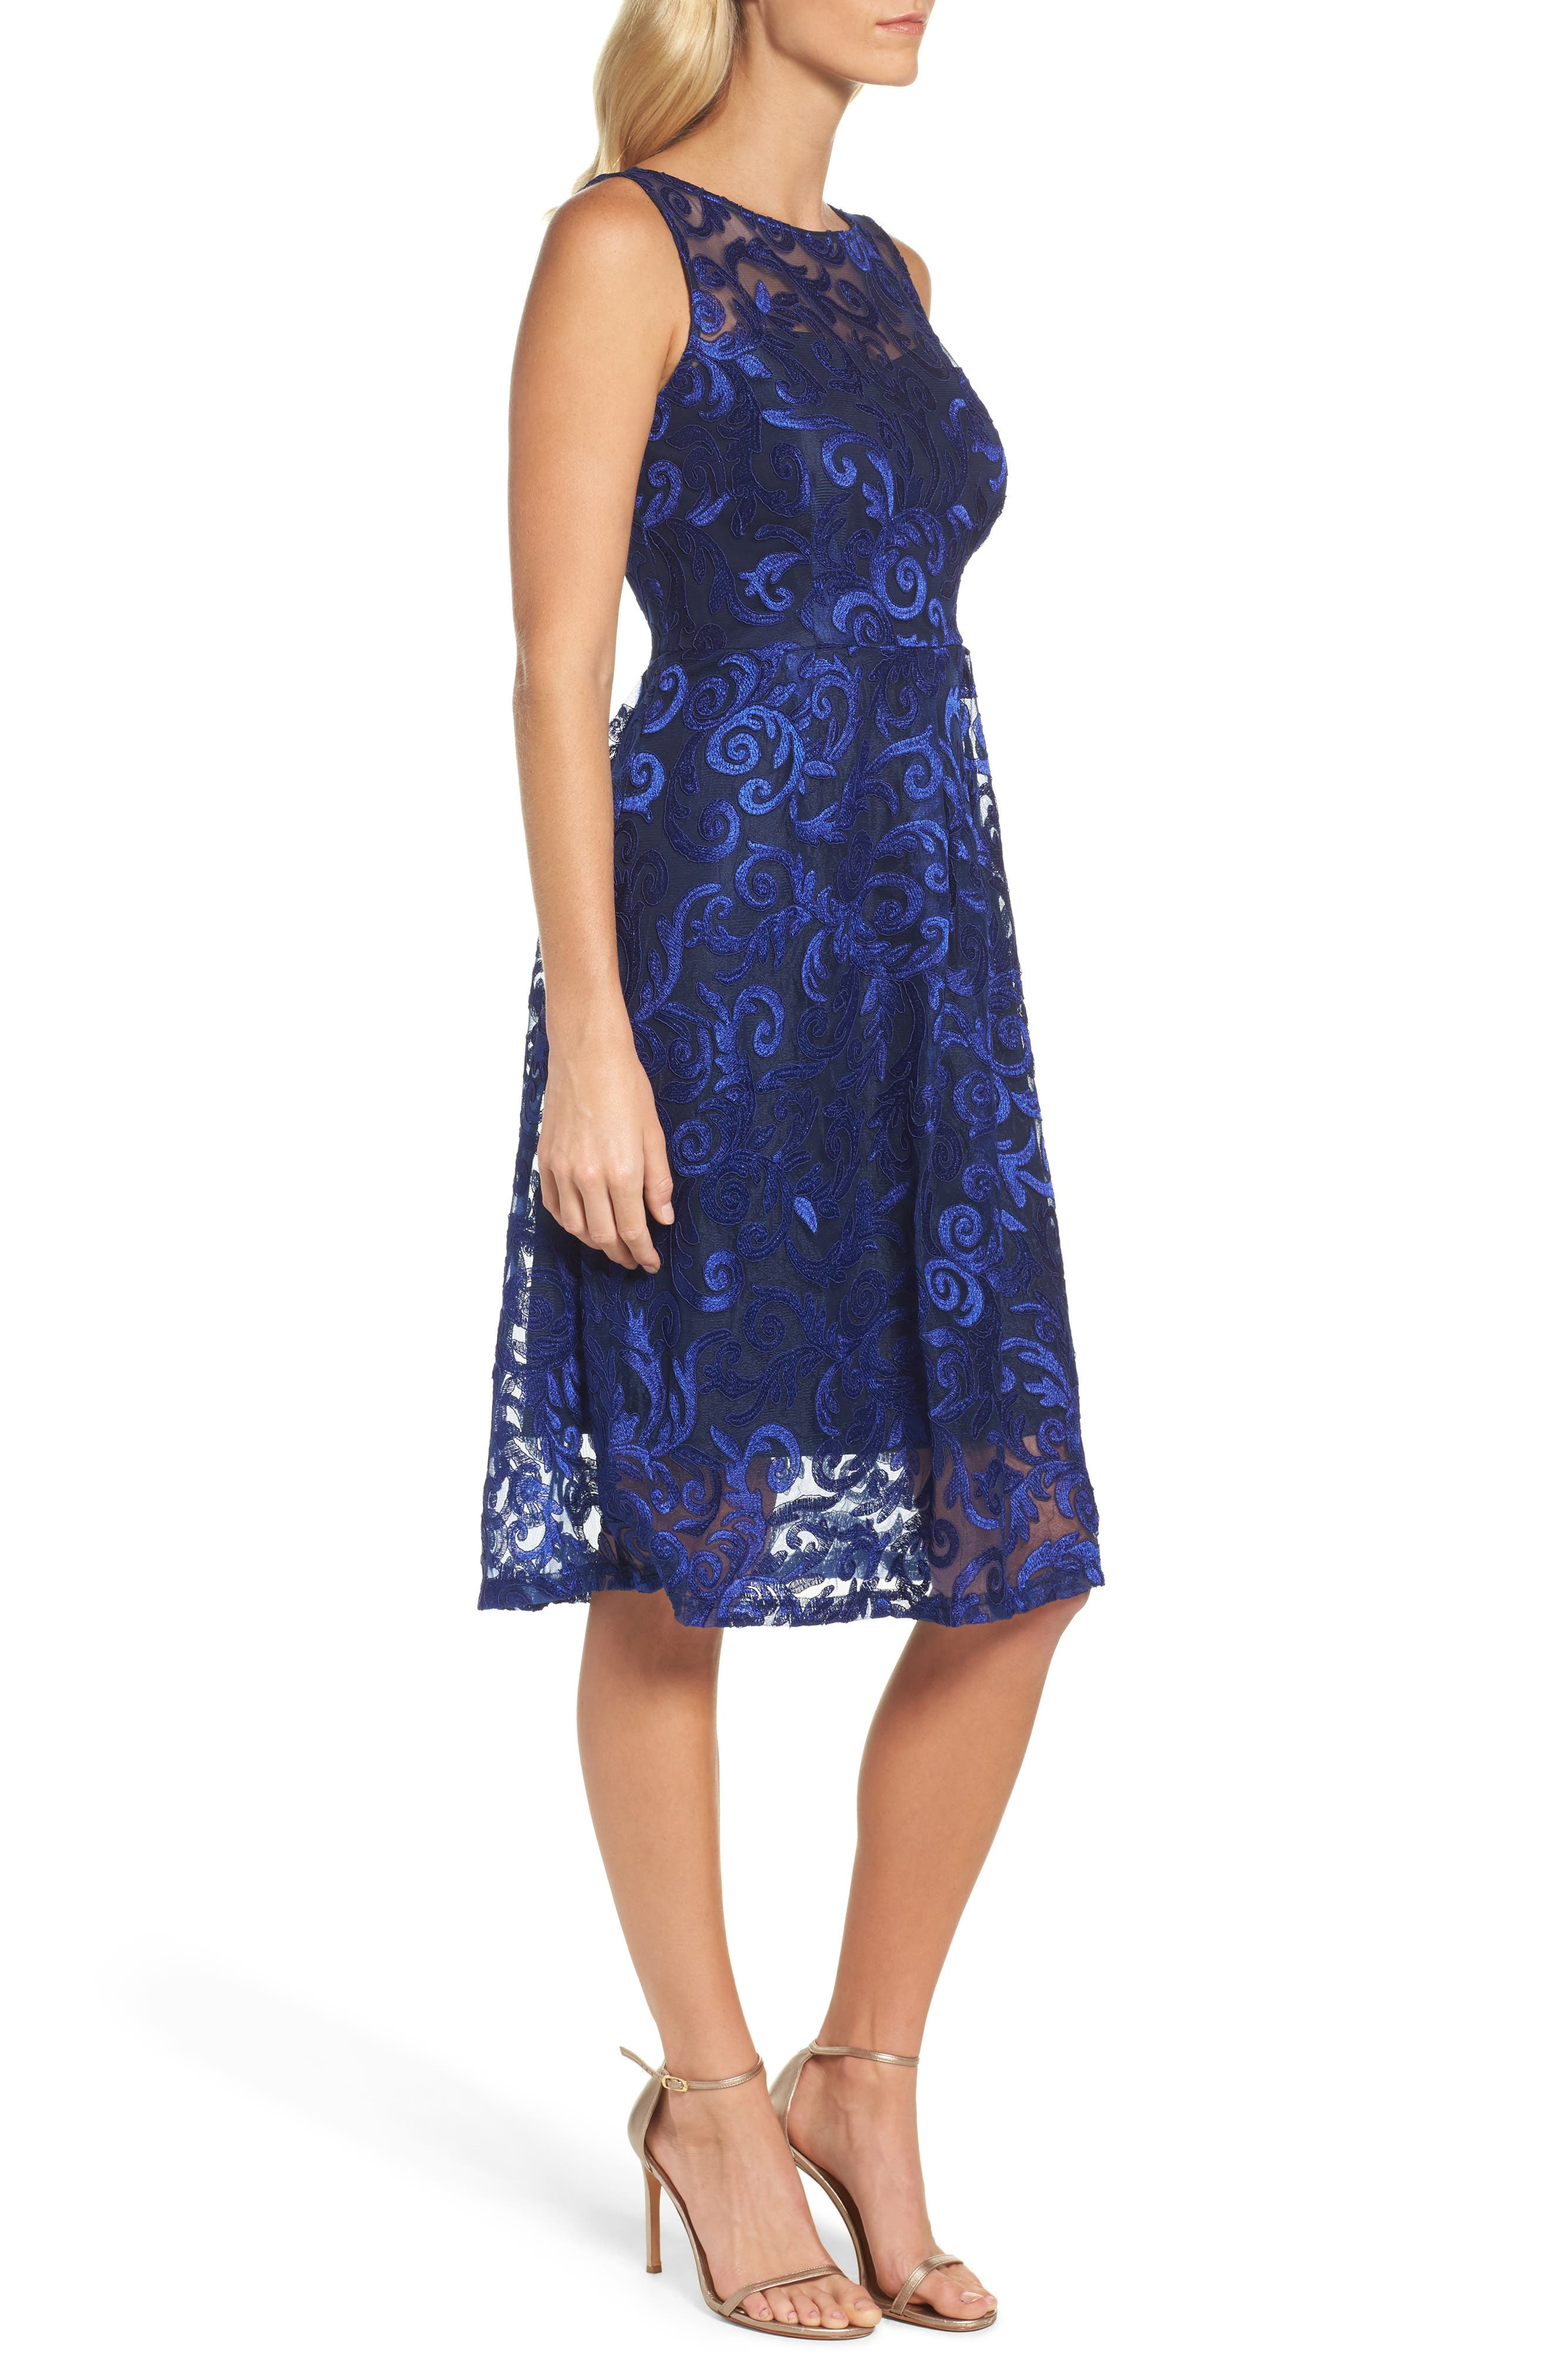 Floral Scroll Embroidered Cocktail Dress,                             Alternate thumbnail 3, color,                             430